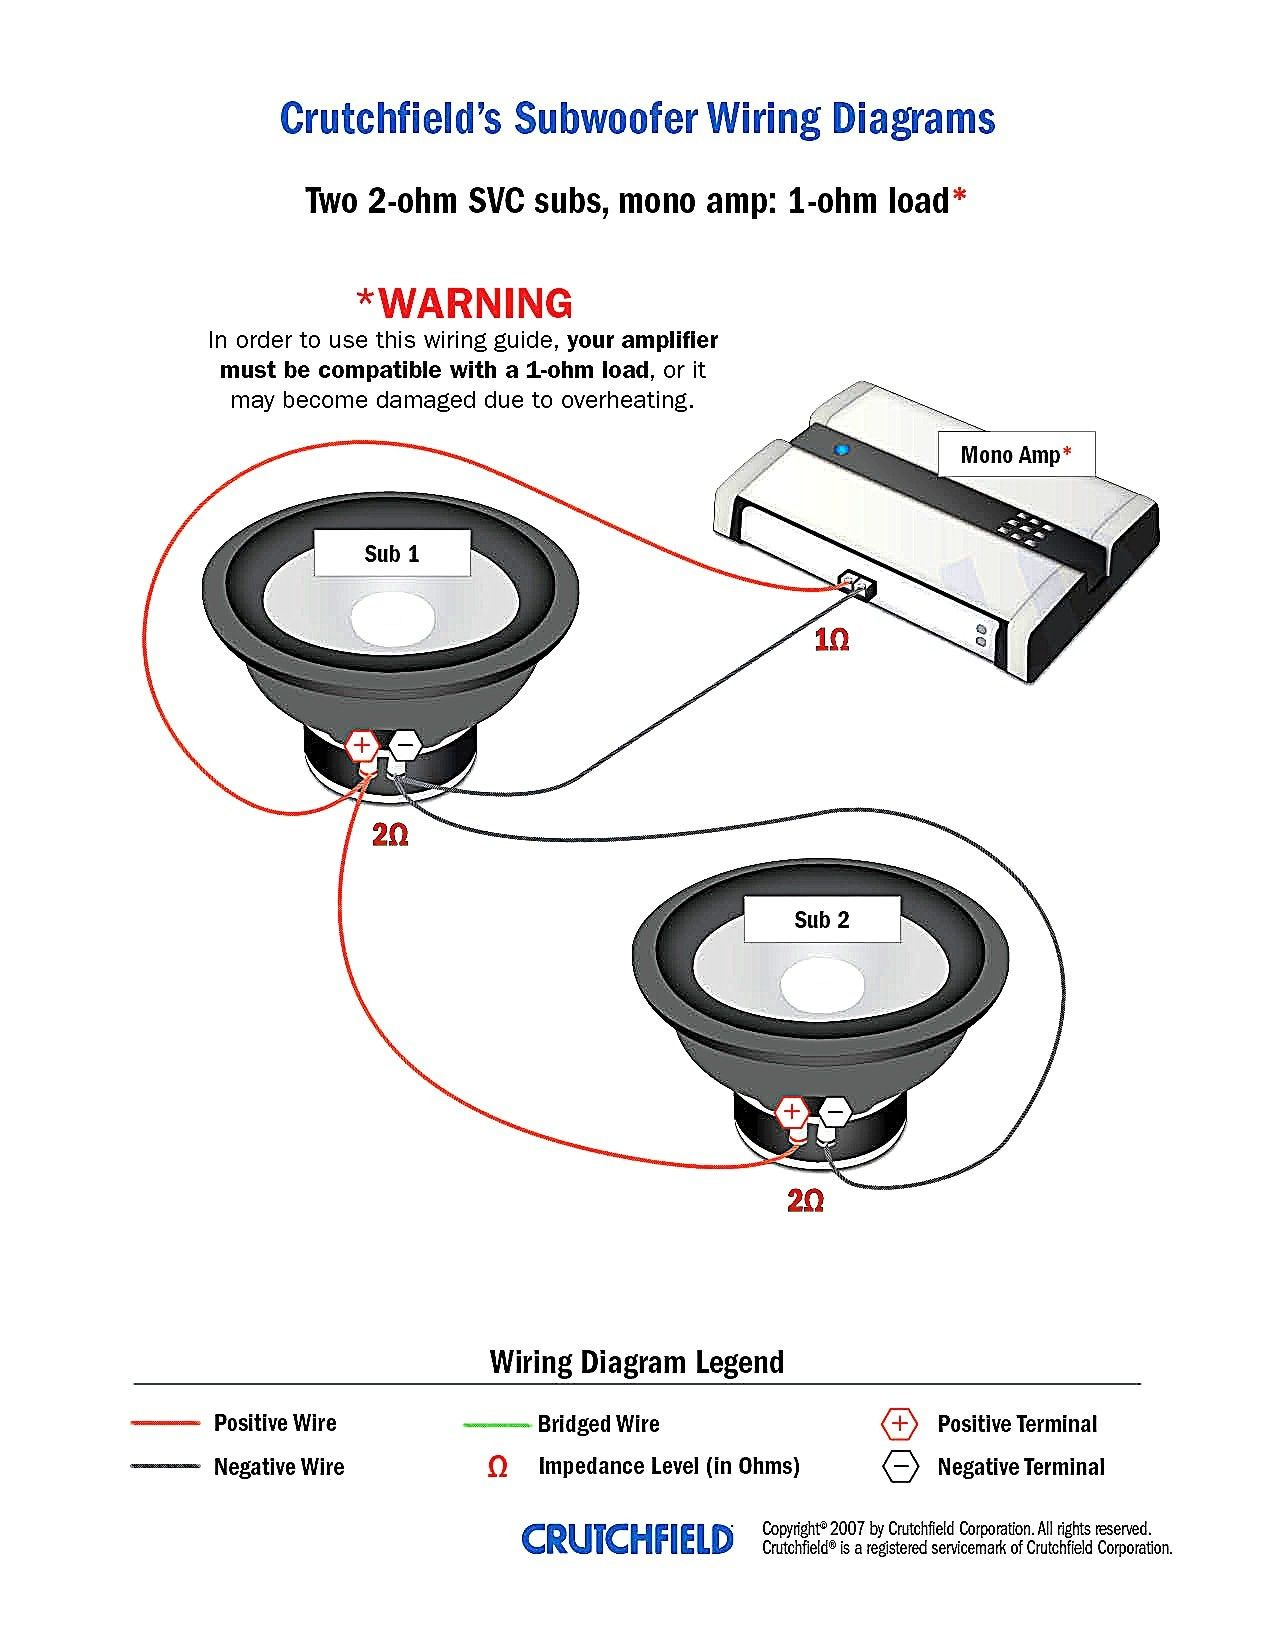 Awesome Crutchfield Sub Wiring Diagram In 2020 Subwoofer Wiring Wiring Speakers Subwoofer